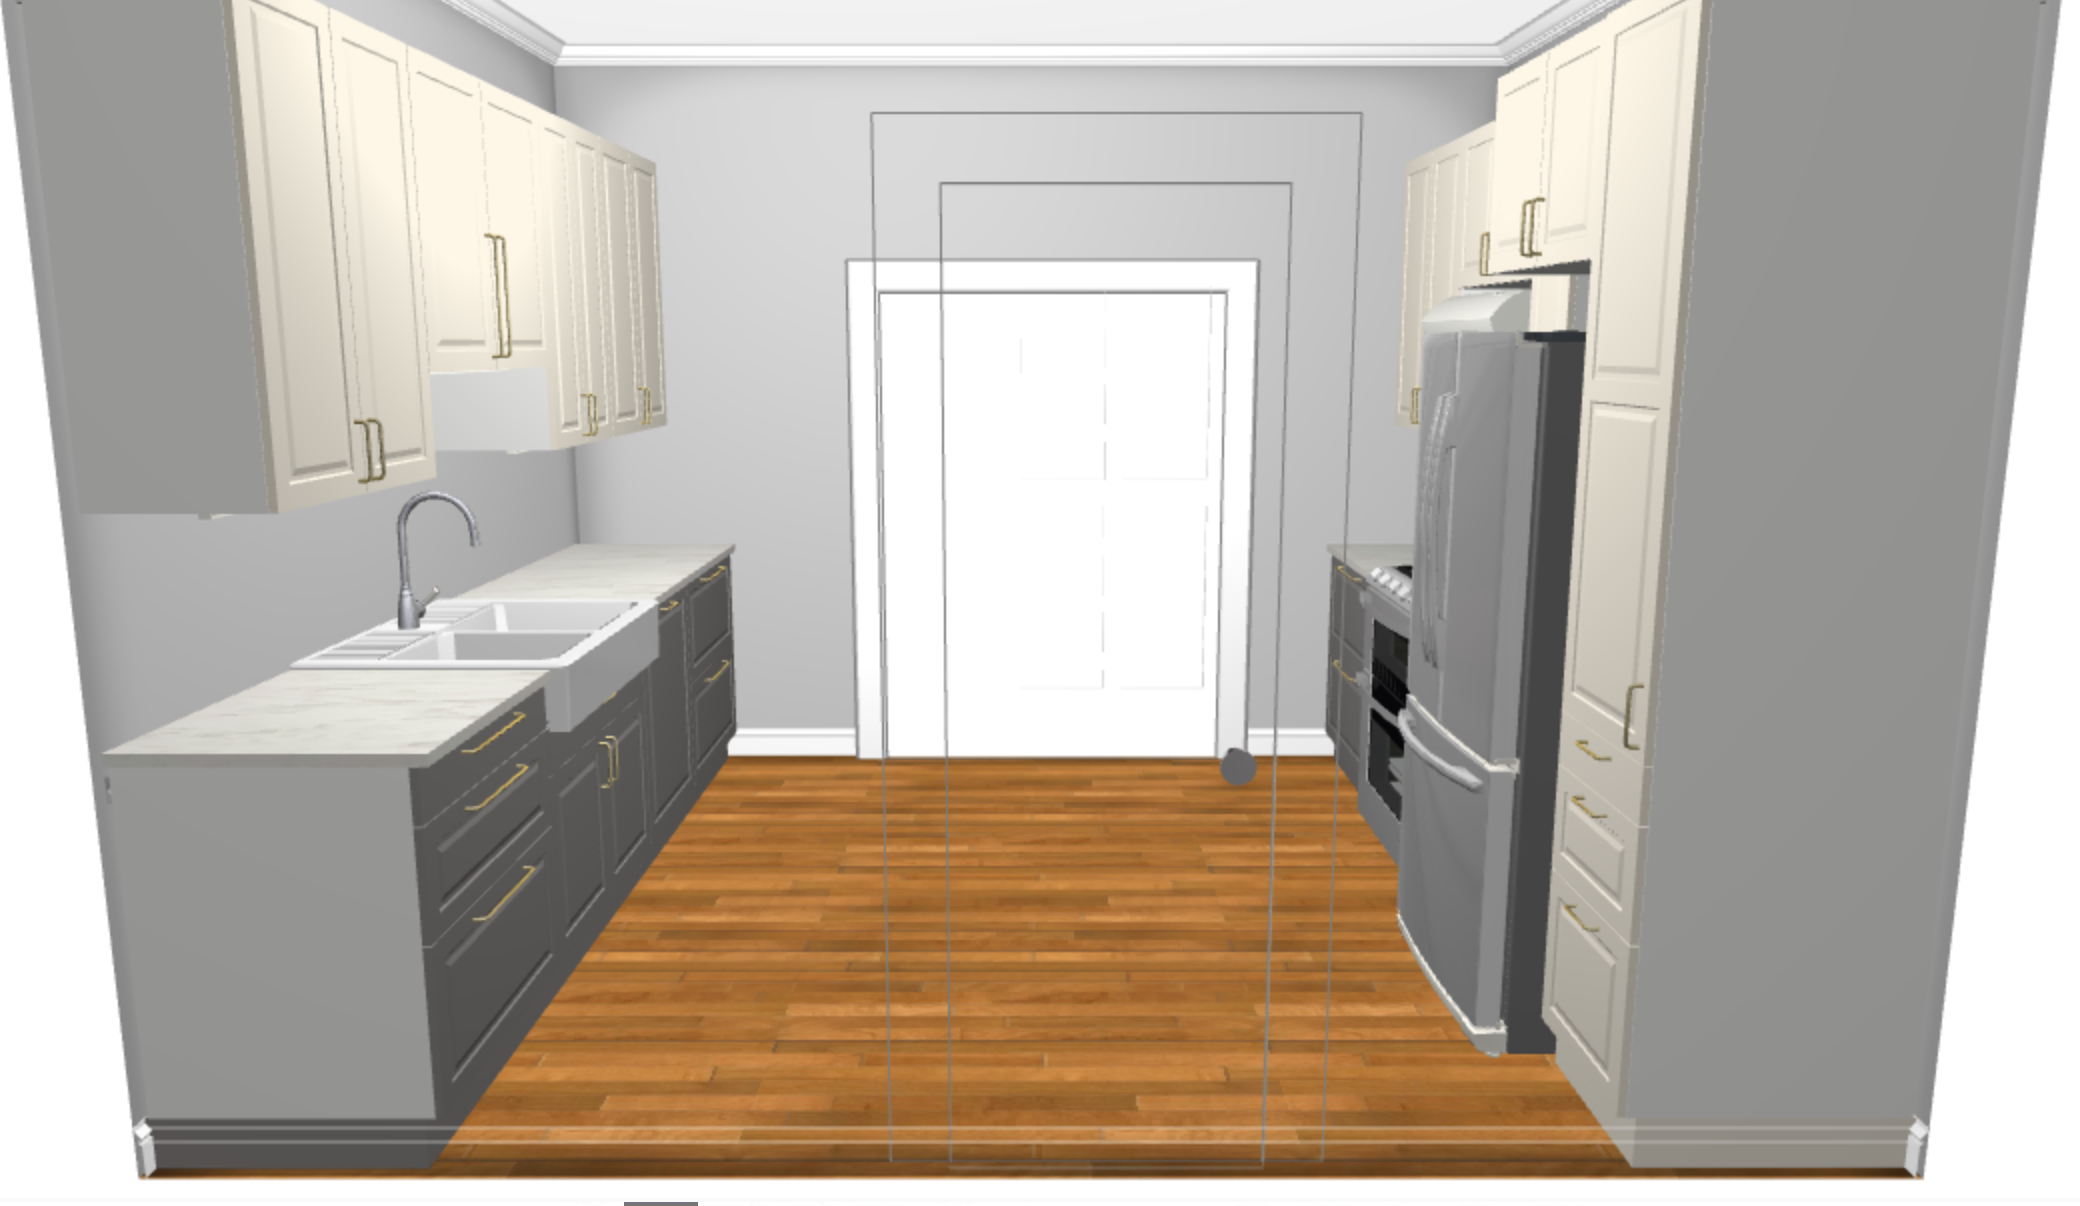 Small Kitchen Remodel: Budget and Design Update — The White ...